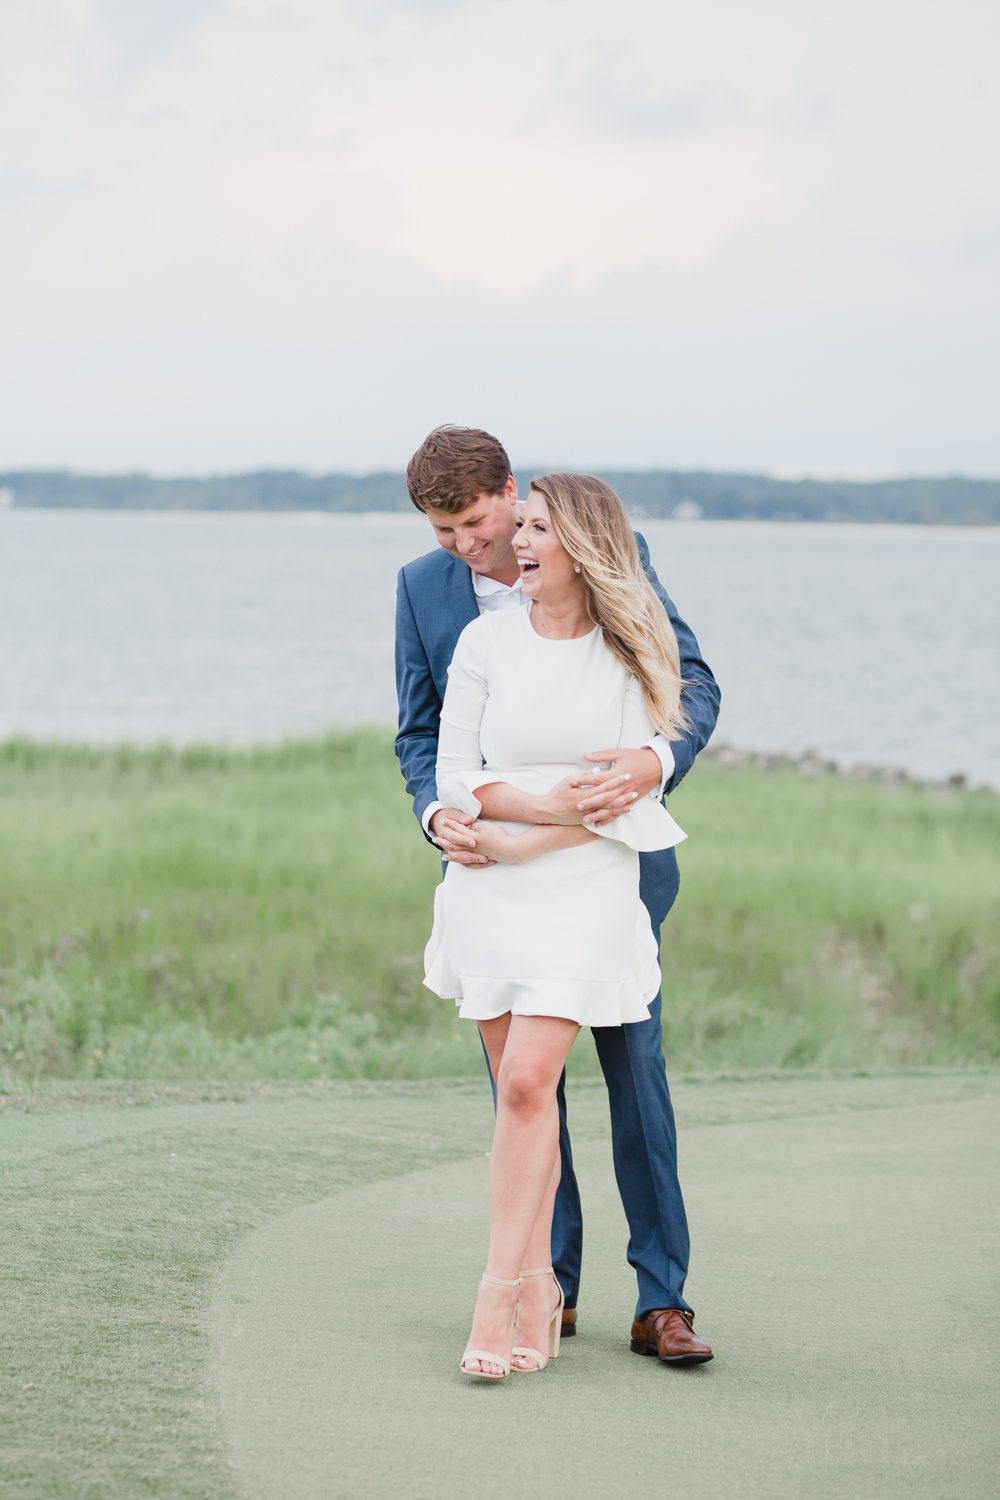 emily baucom charleston wedding photographer (23 of 25)